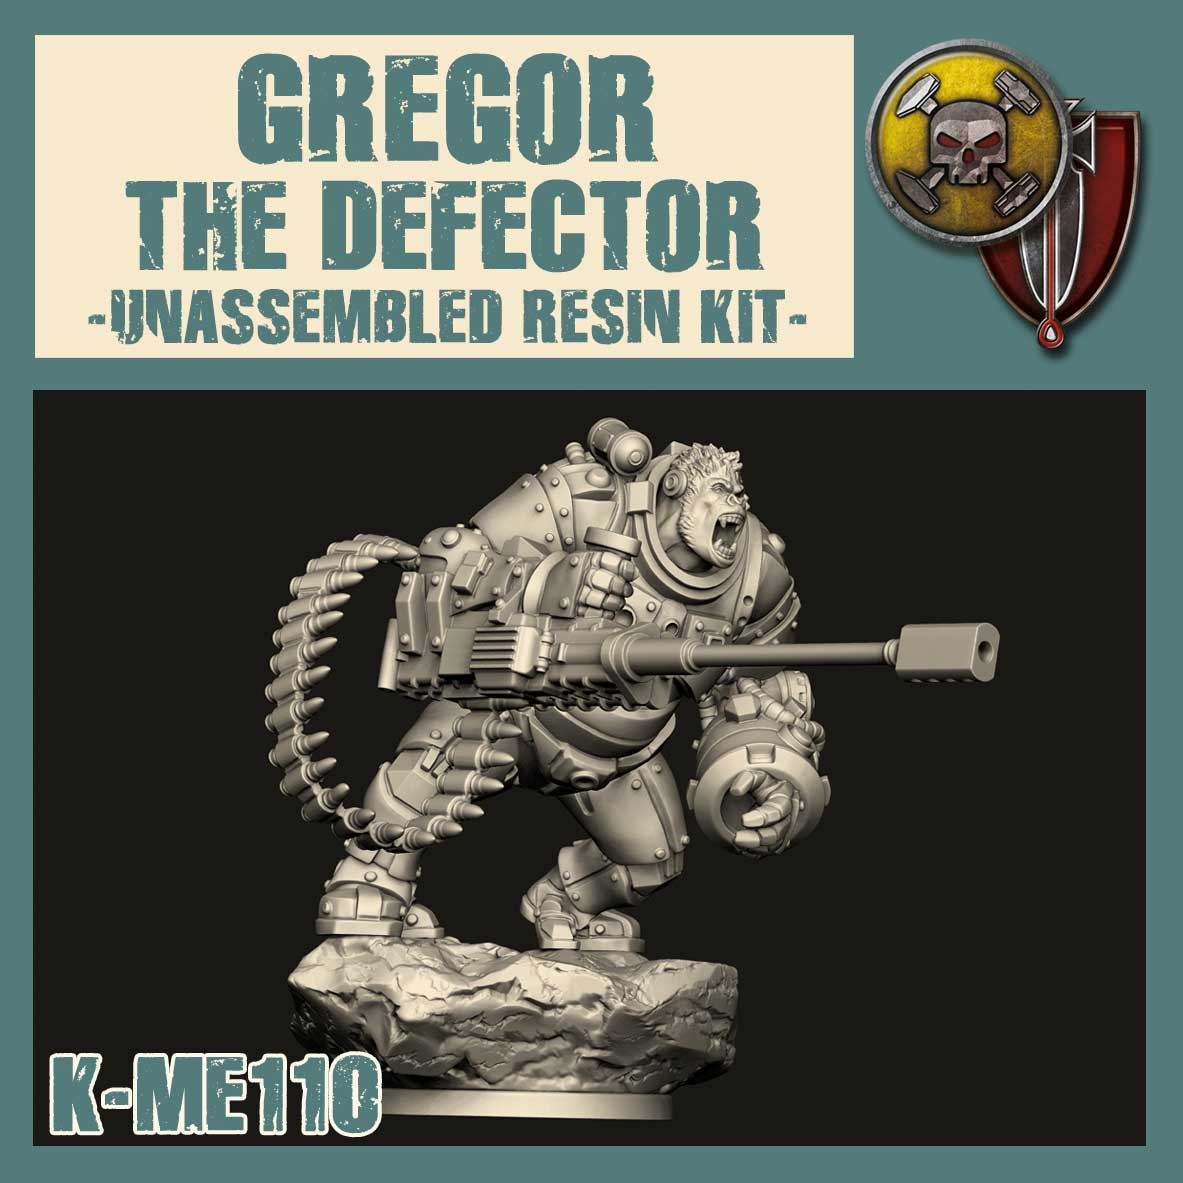 GREGOR THE DEFECTOR Model Kit